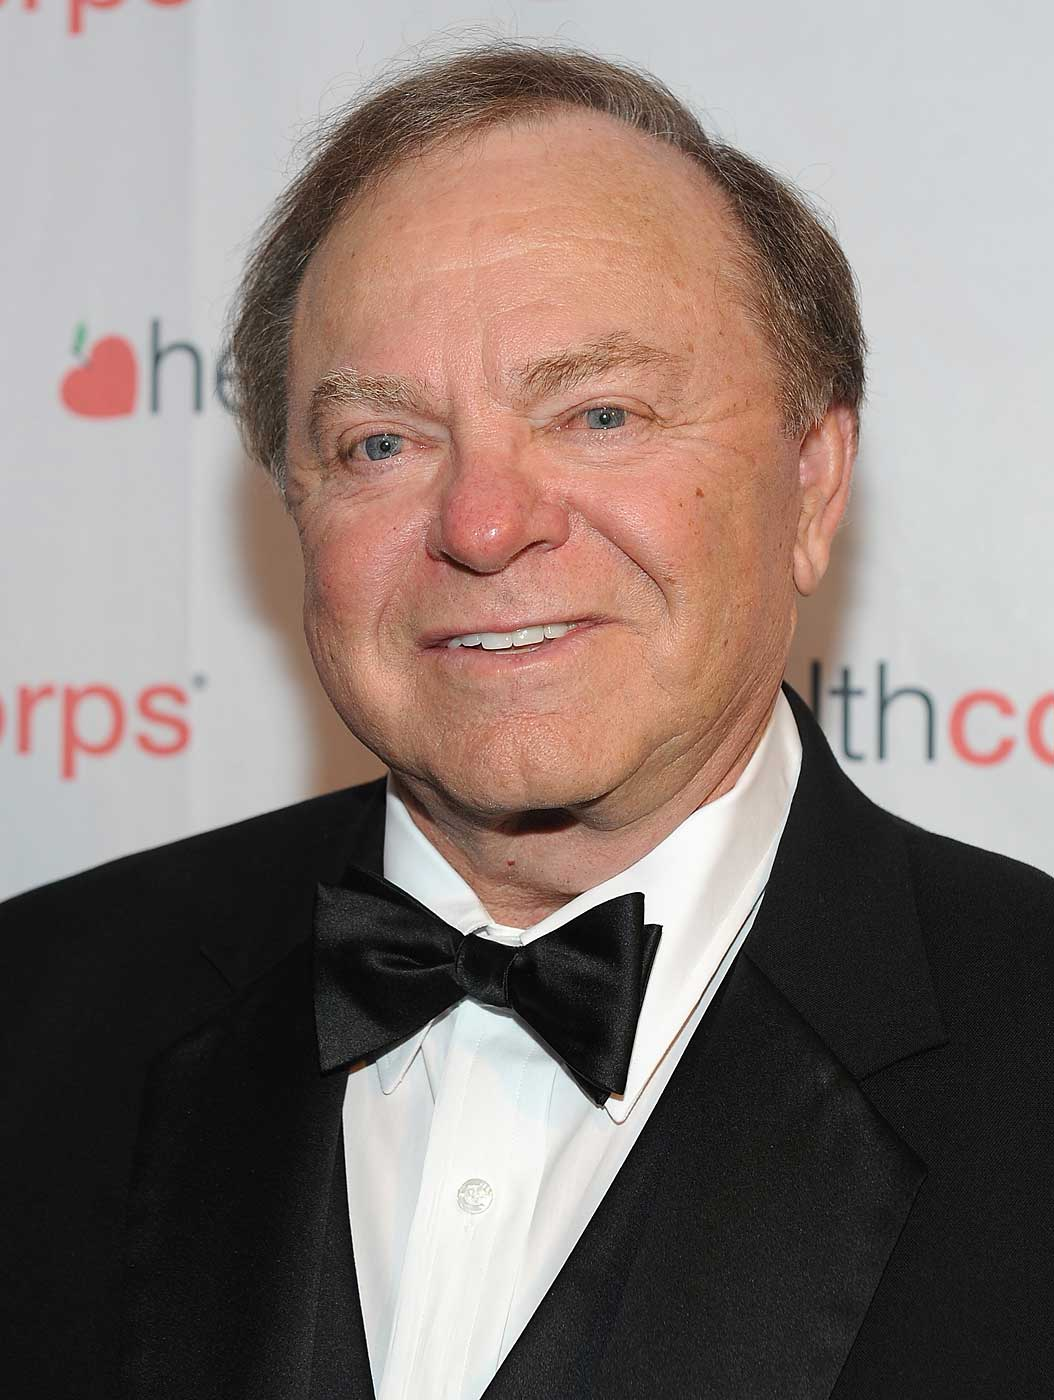 Harold Hamm, CEO of Continental Resources, attends the 7th Annual Heath Corps Grassroots Garden Gala at Gotham Hall on April 17, 2013 in New York City.